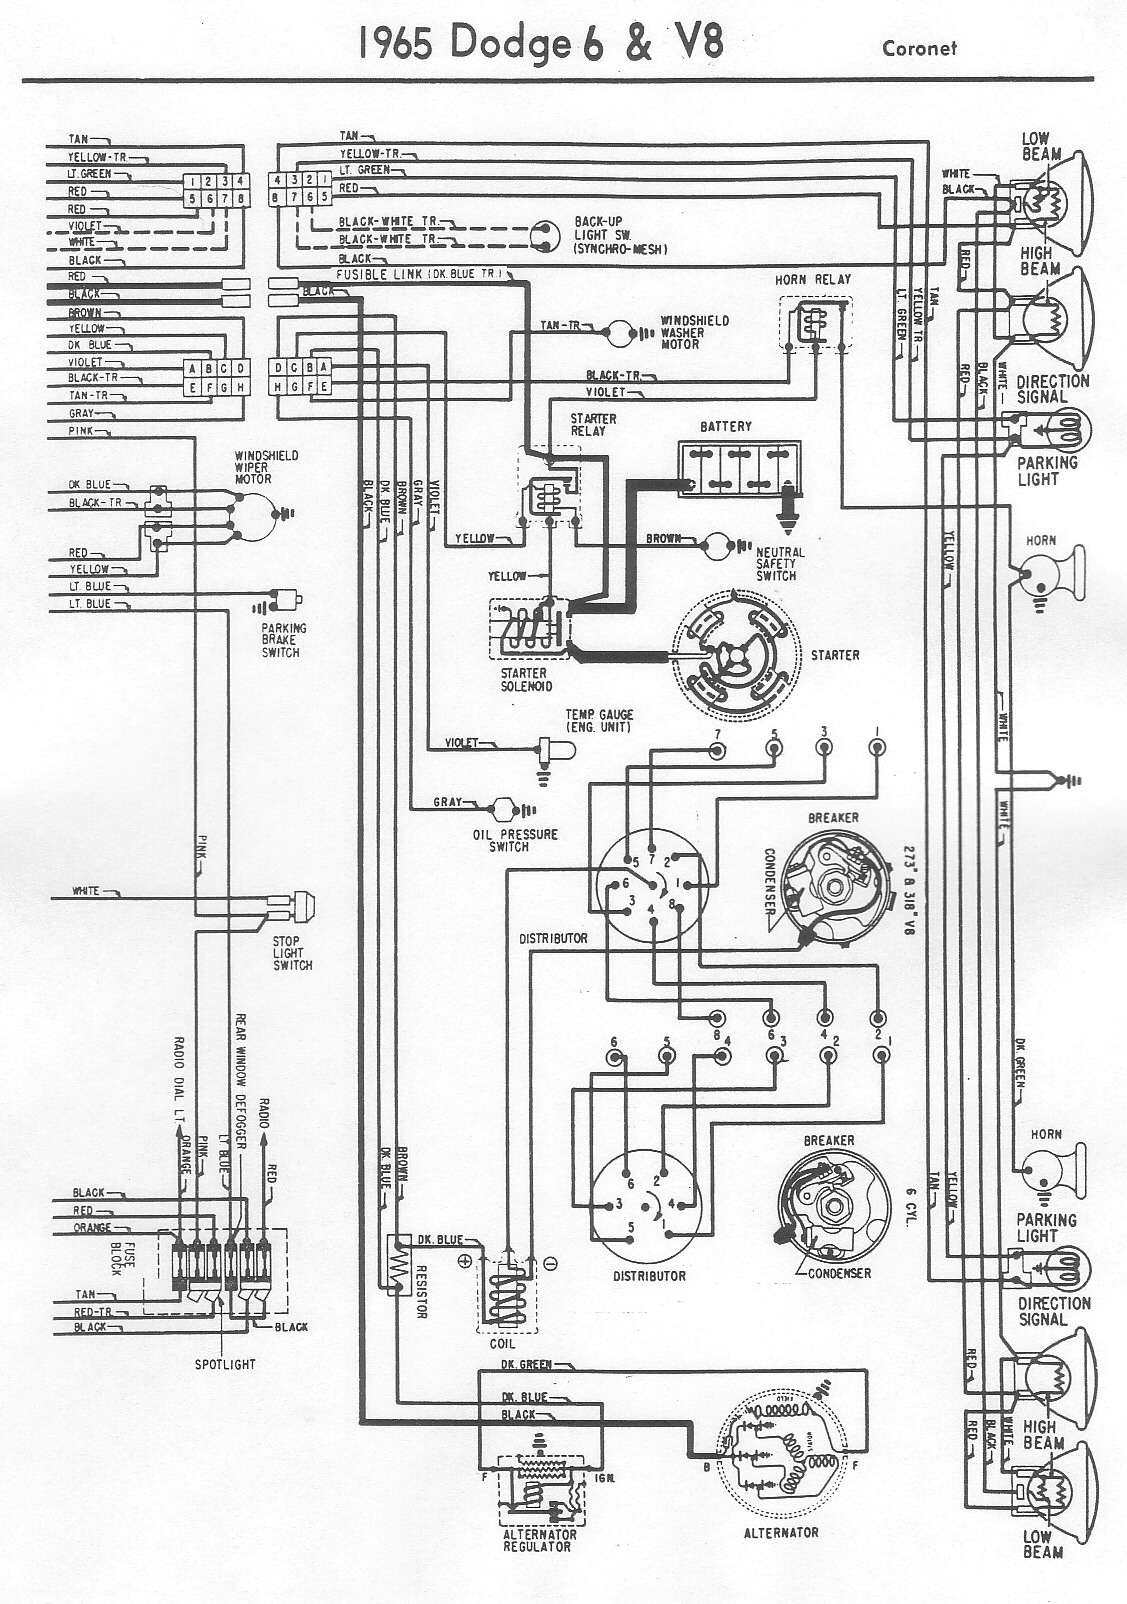 dodge charger wiring diagram on 1966 dodge charger wiring diagram